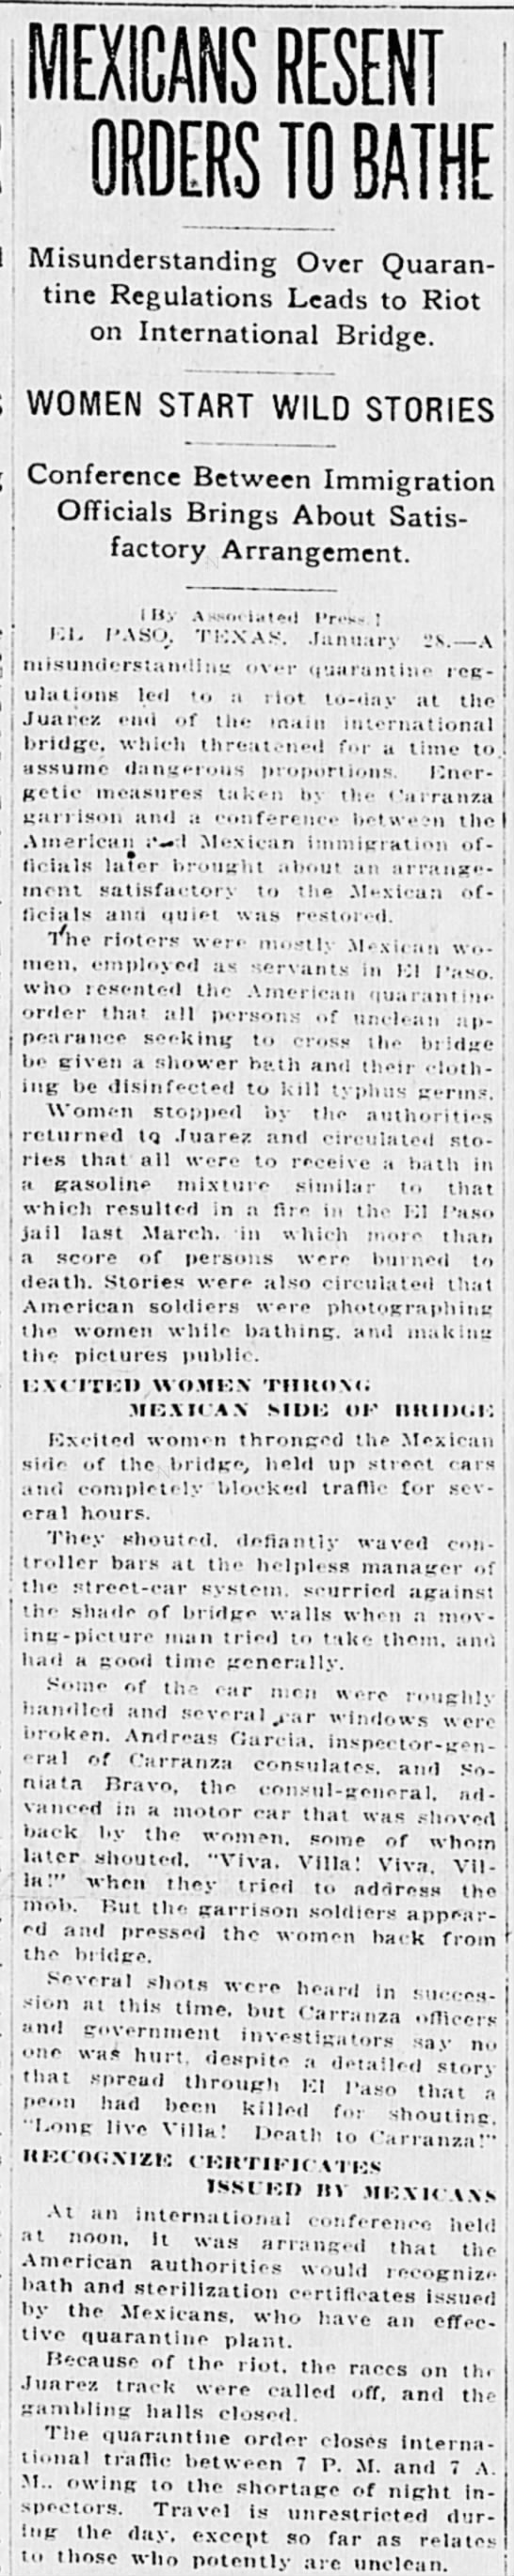 Mexicans Resent Orders to Bathe, The Times Dispatch (Richmond, Virginia) January 29, 1917, p 1 -